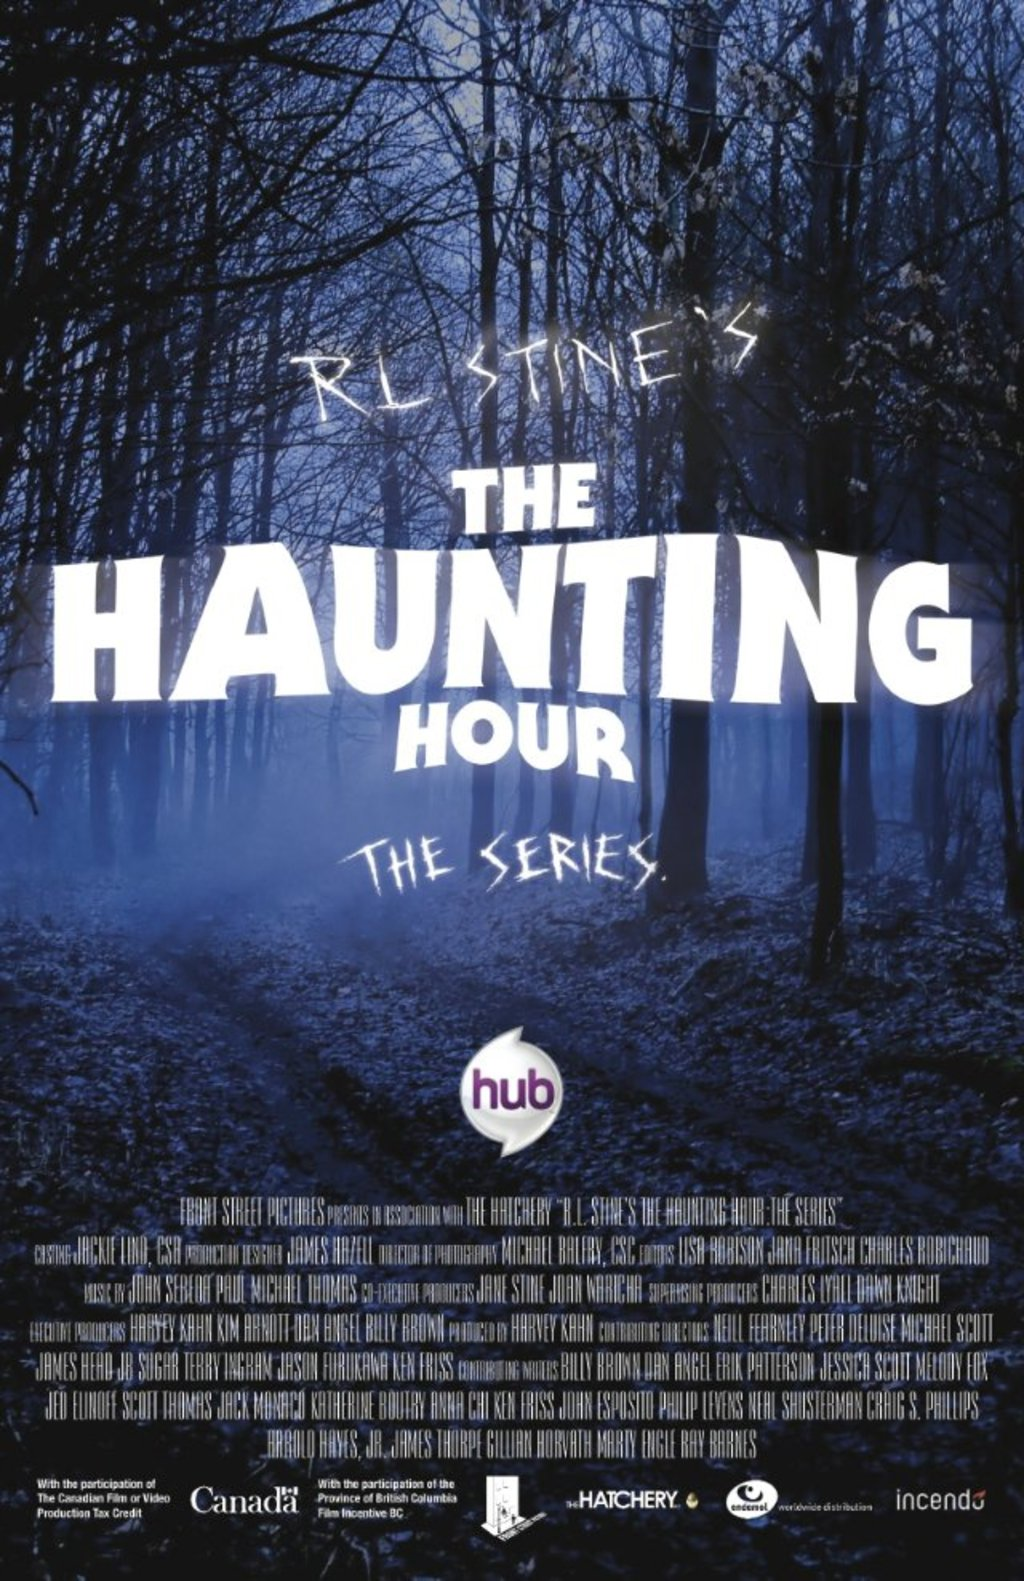 R.L. Stine's The Haunting Hour - Cover Art